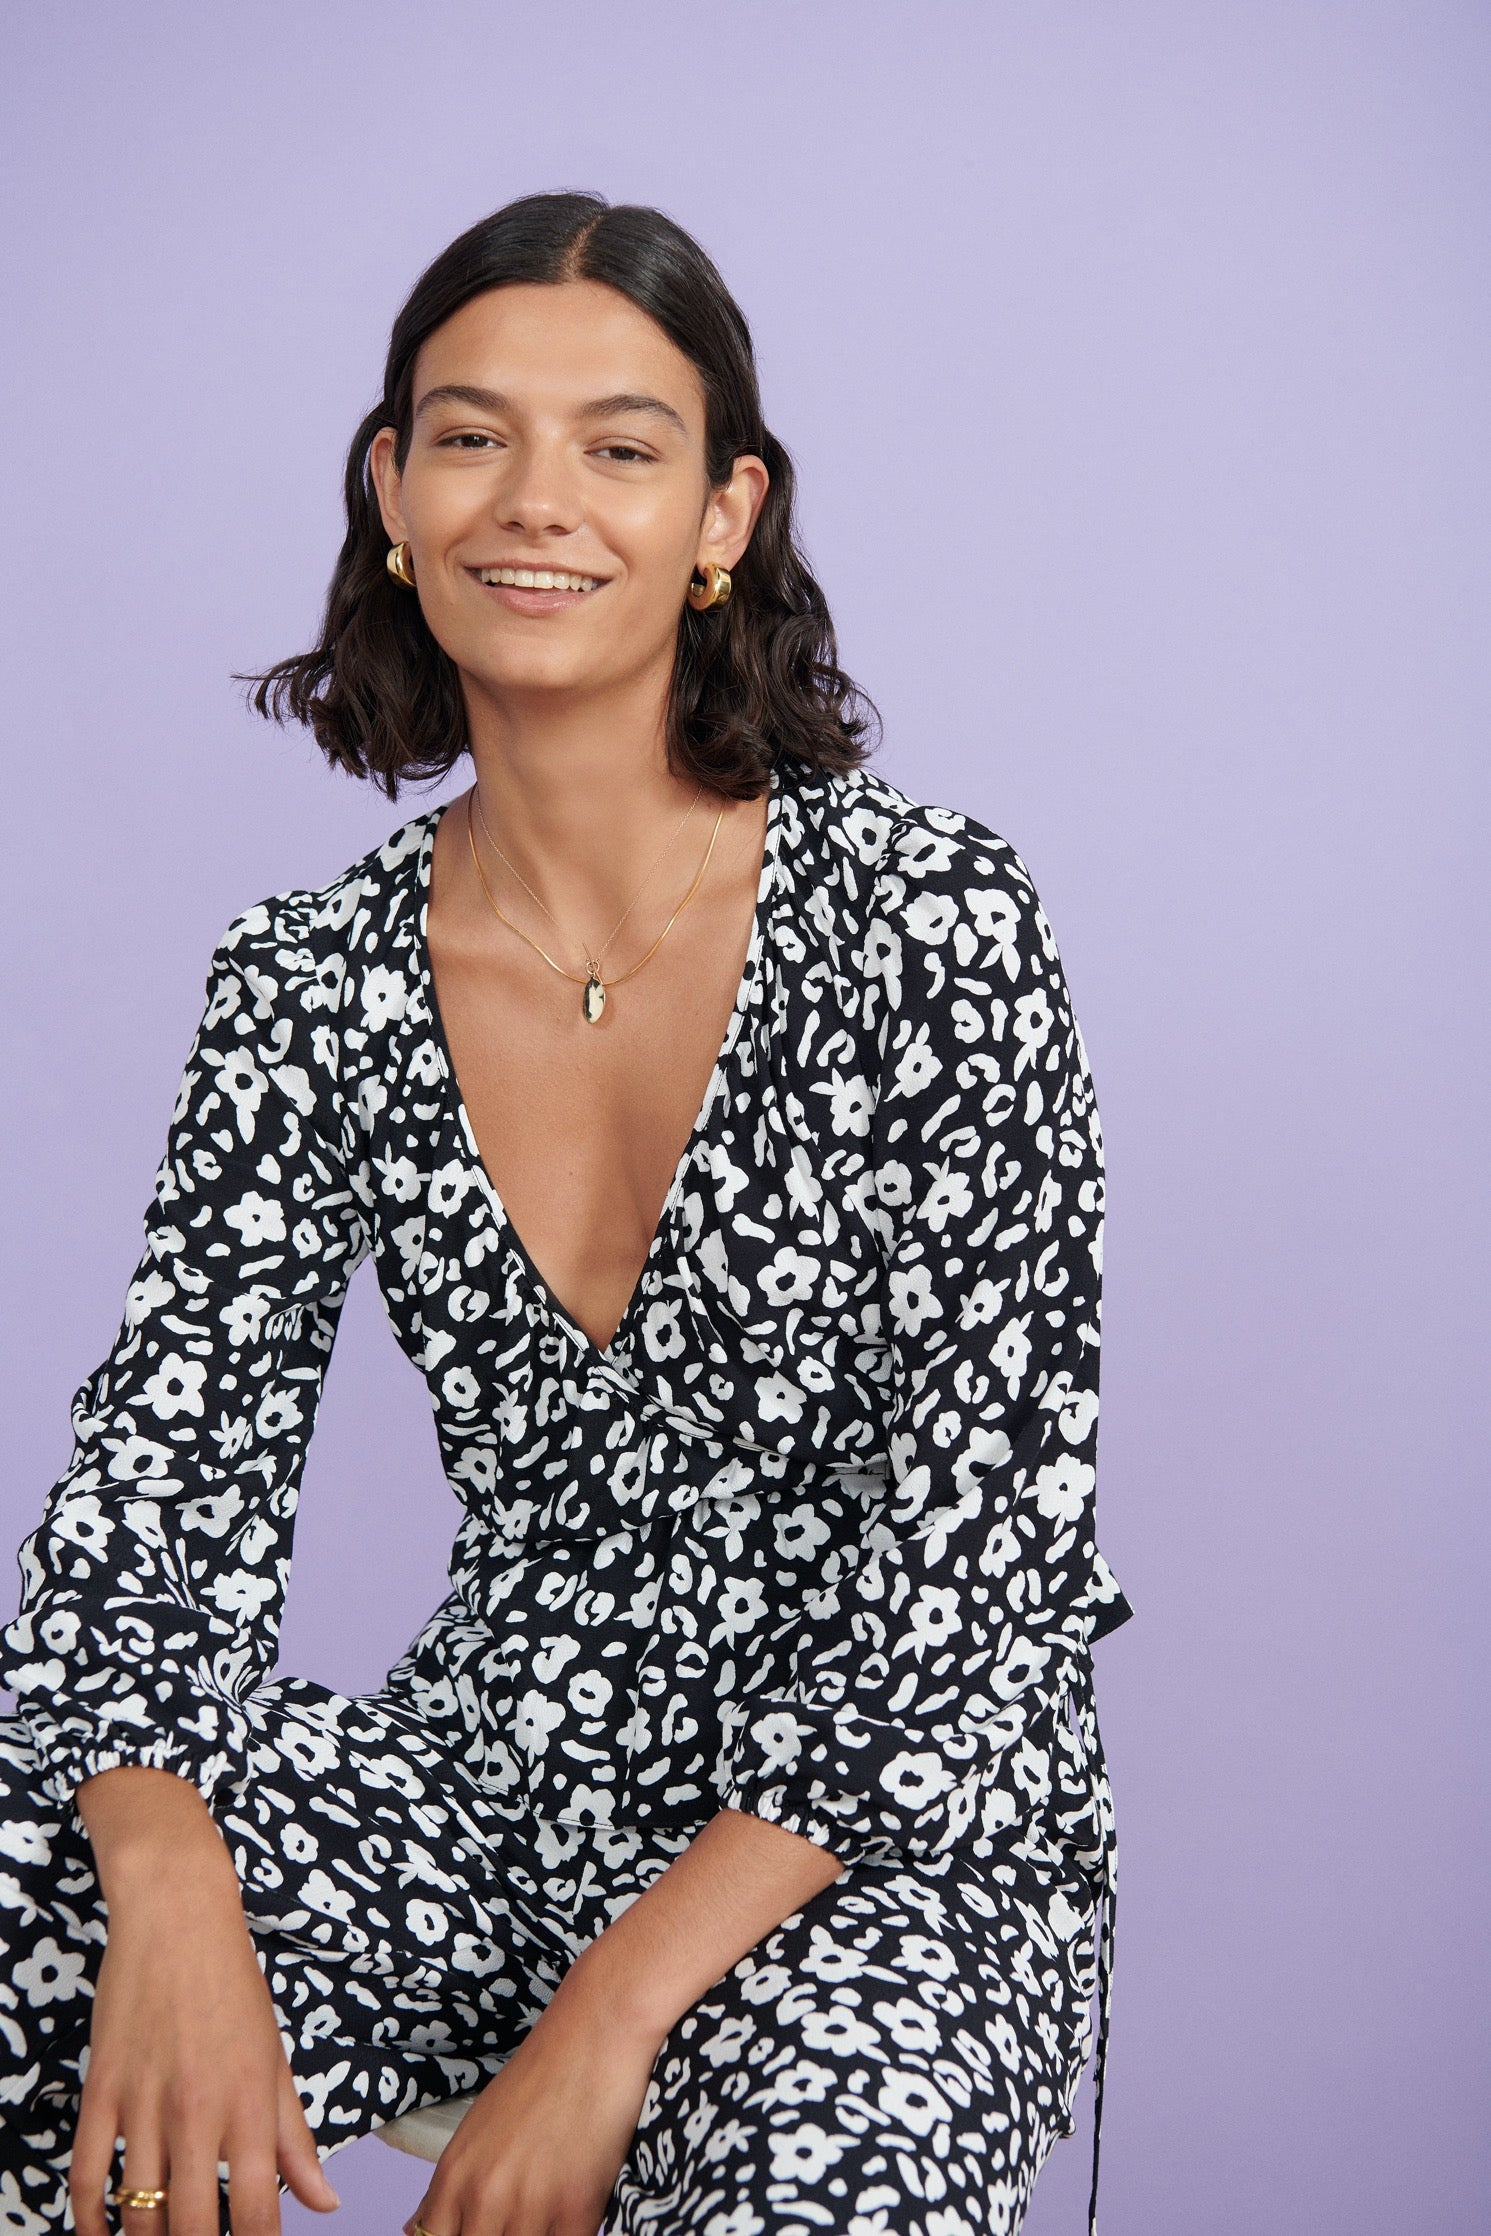 FSC Viscose Monochrome Floral Print Wrap Top